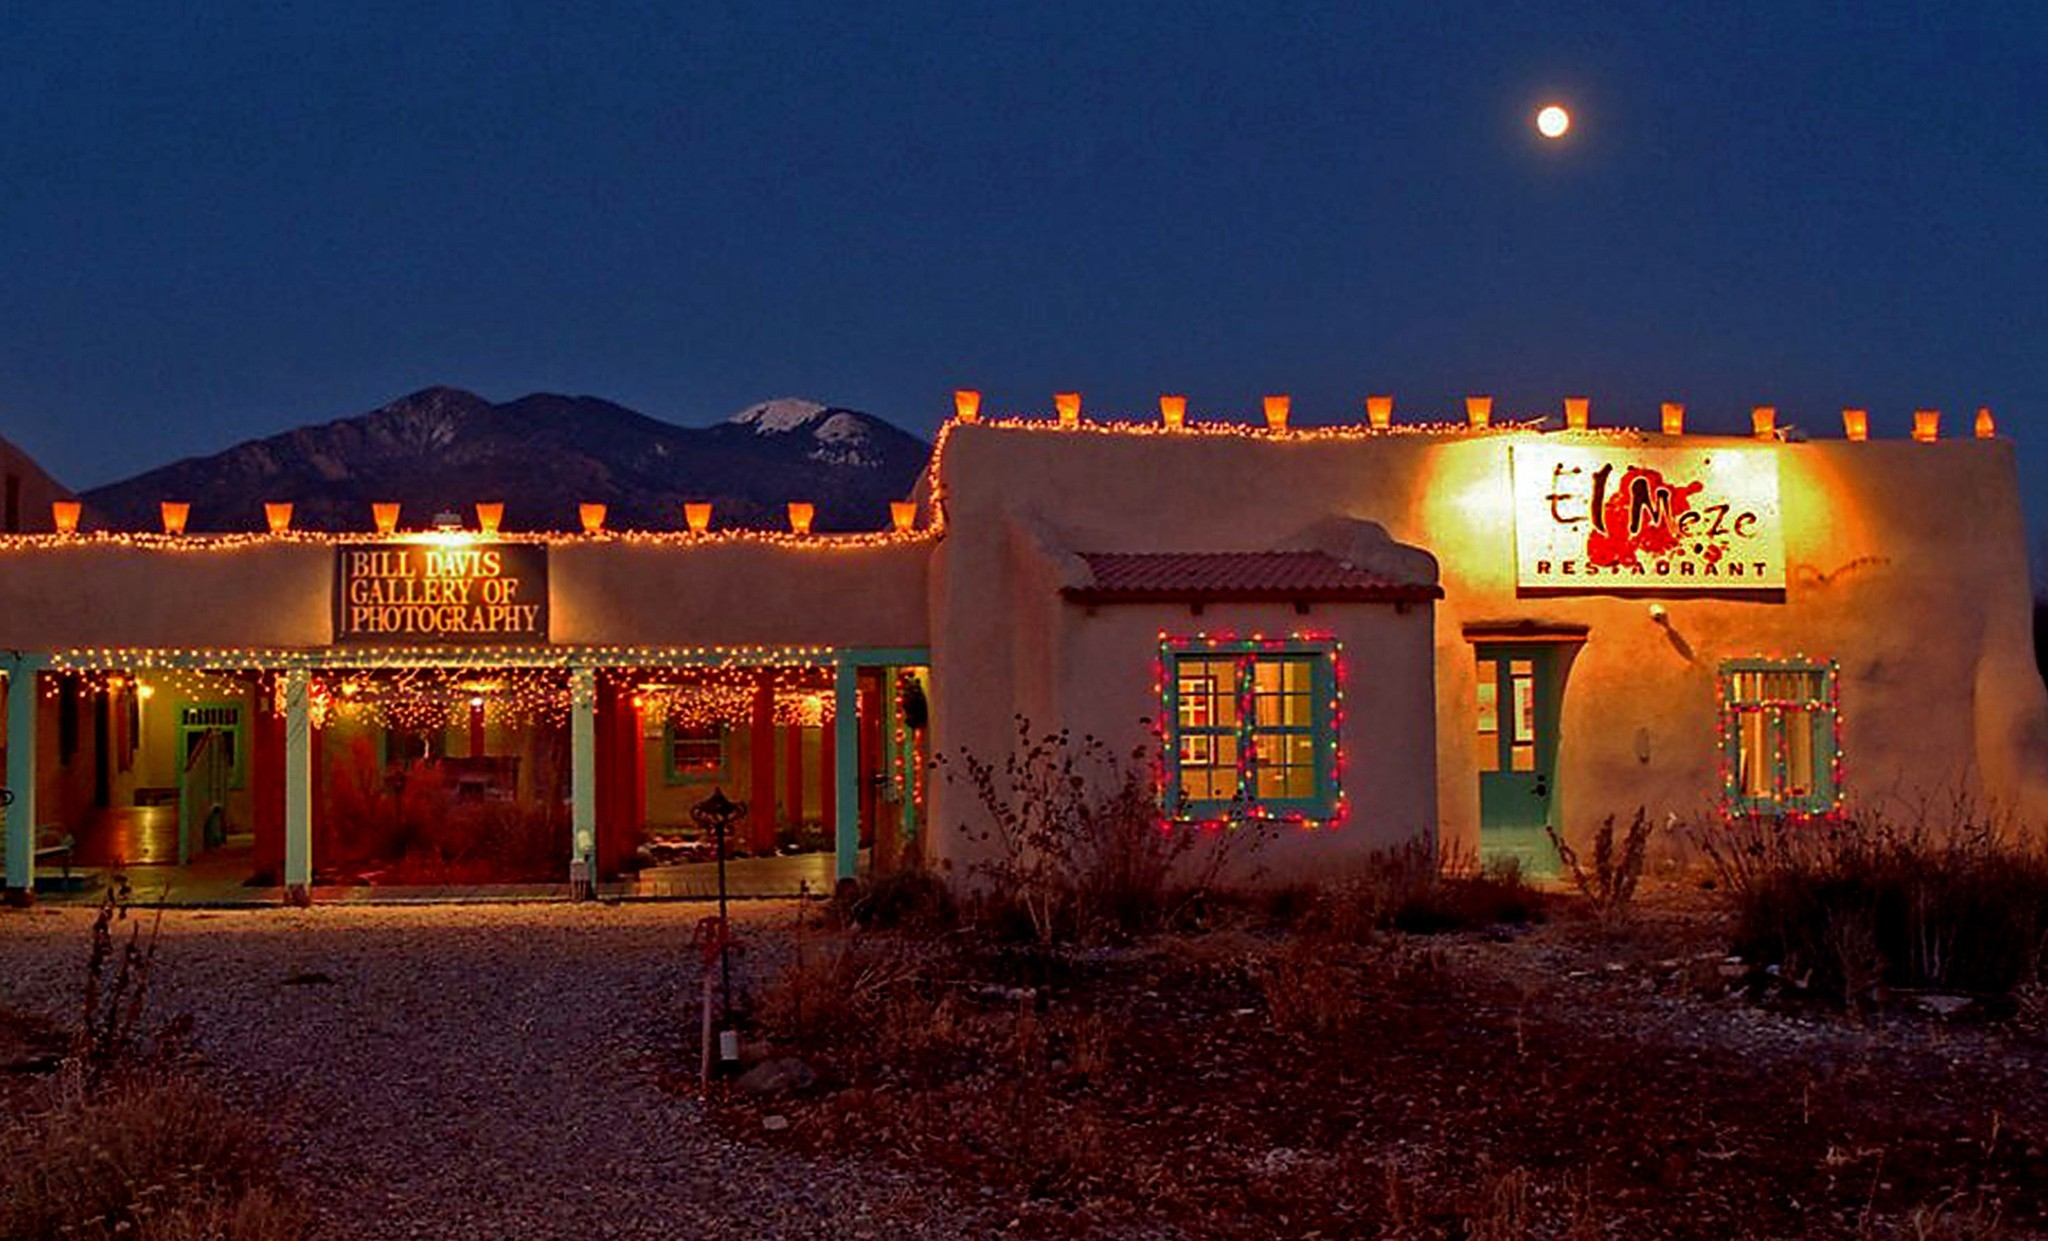 A weekend in Taos, New Mexico - El Meze